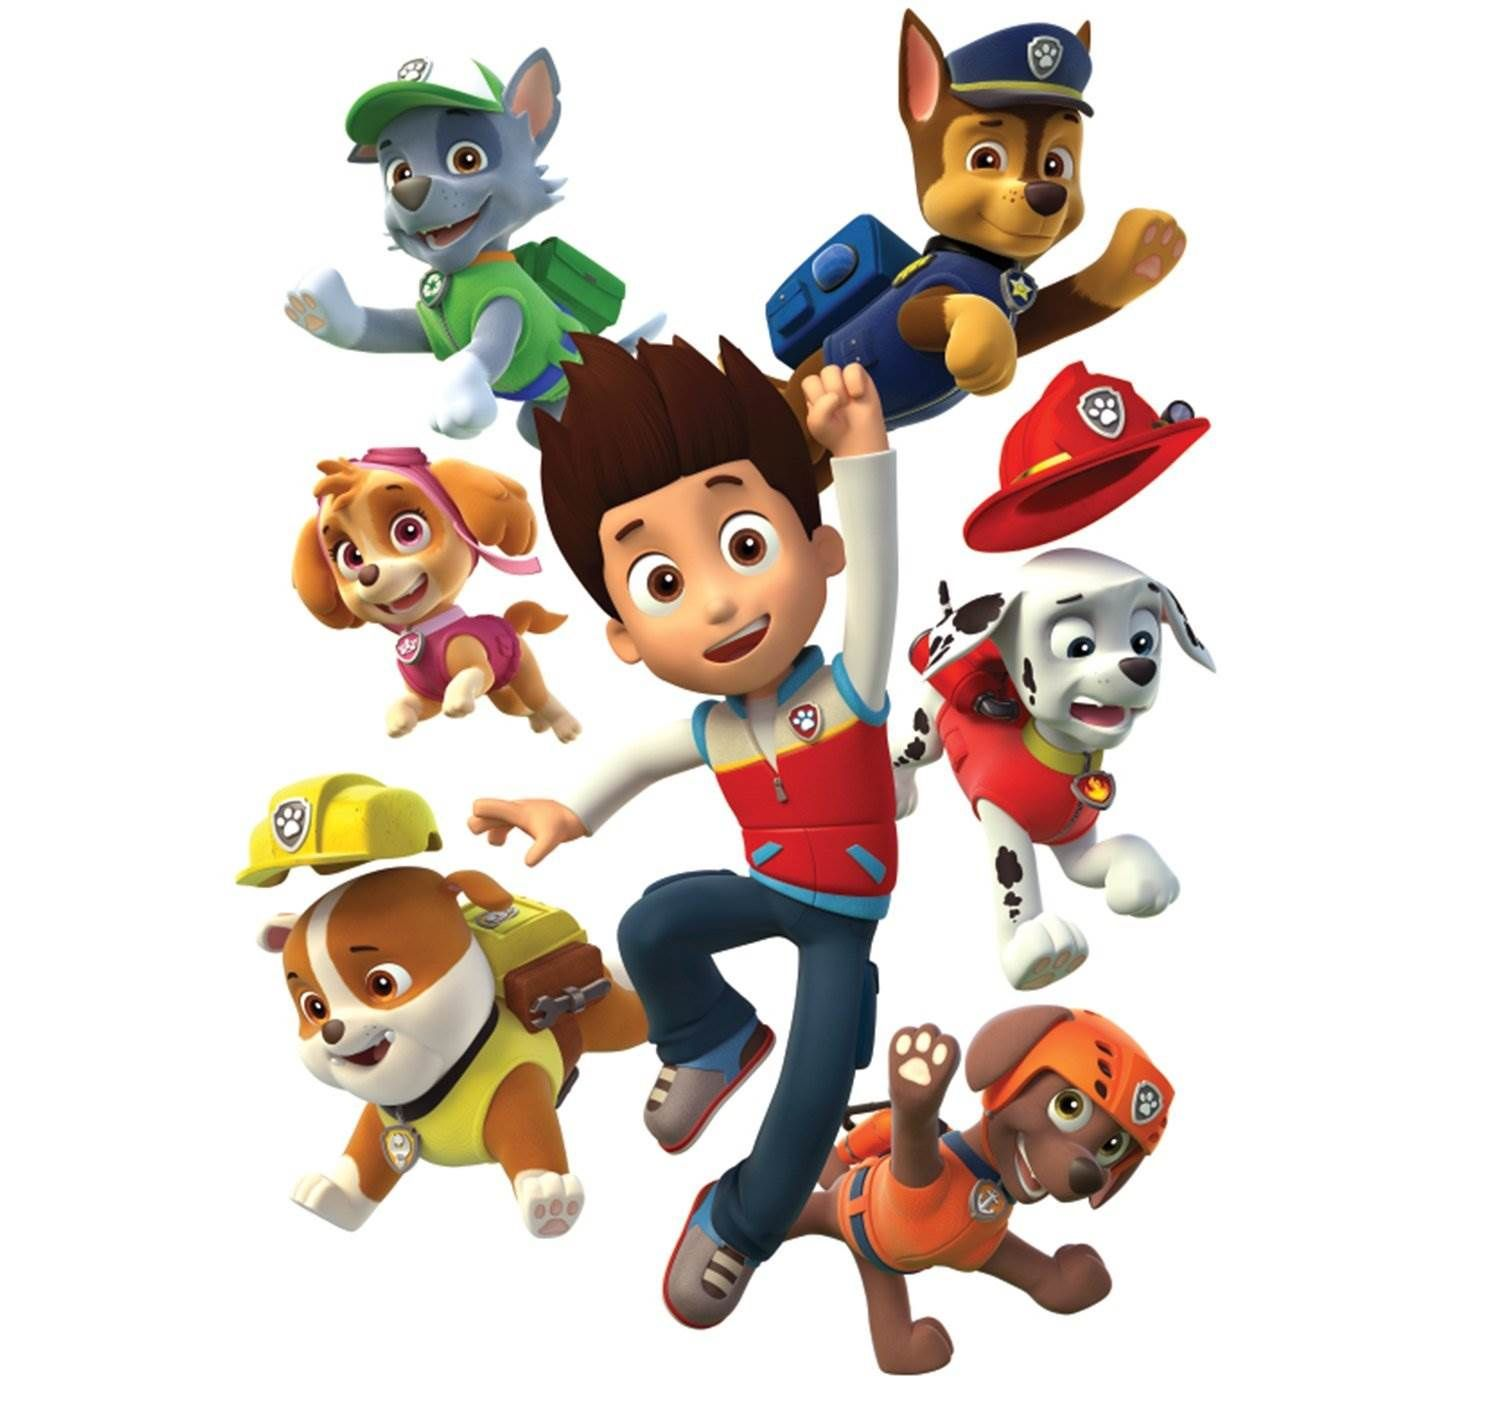 Paw Patrol Wallpaper U Free Download 1920x1080